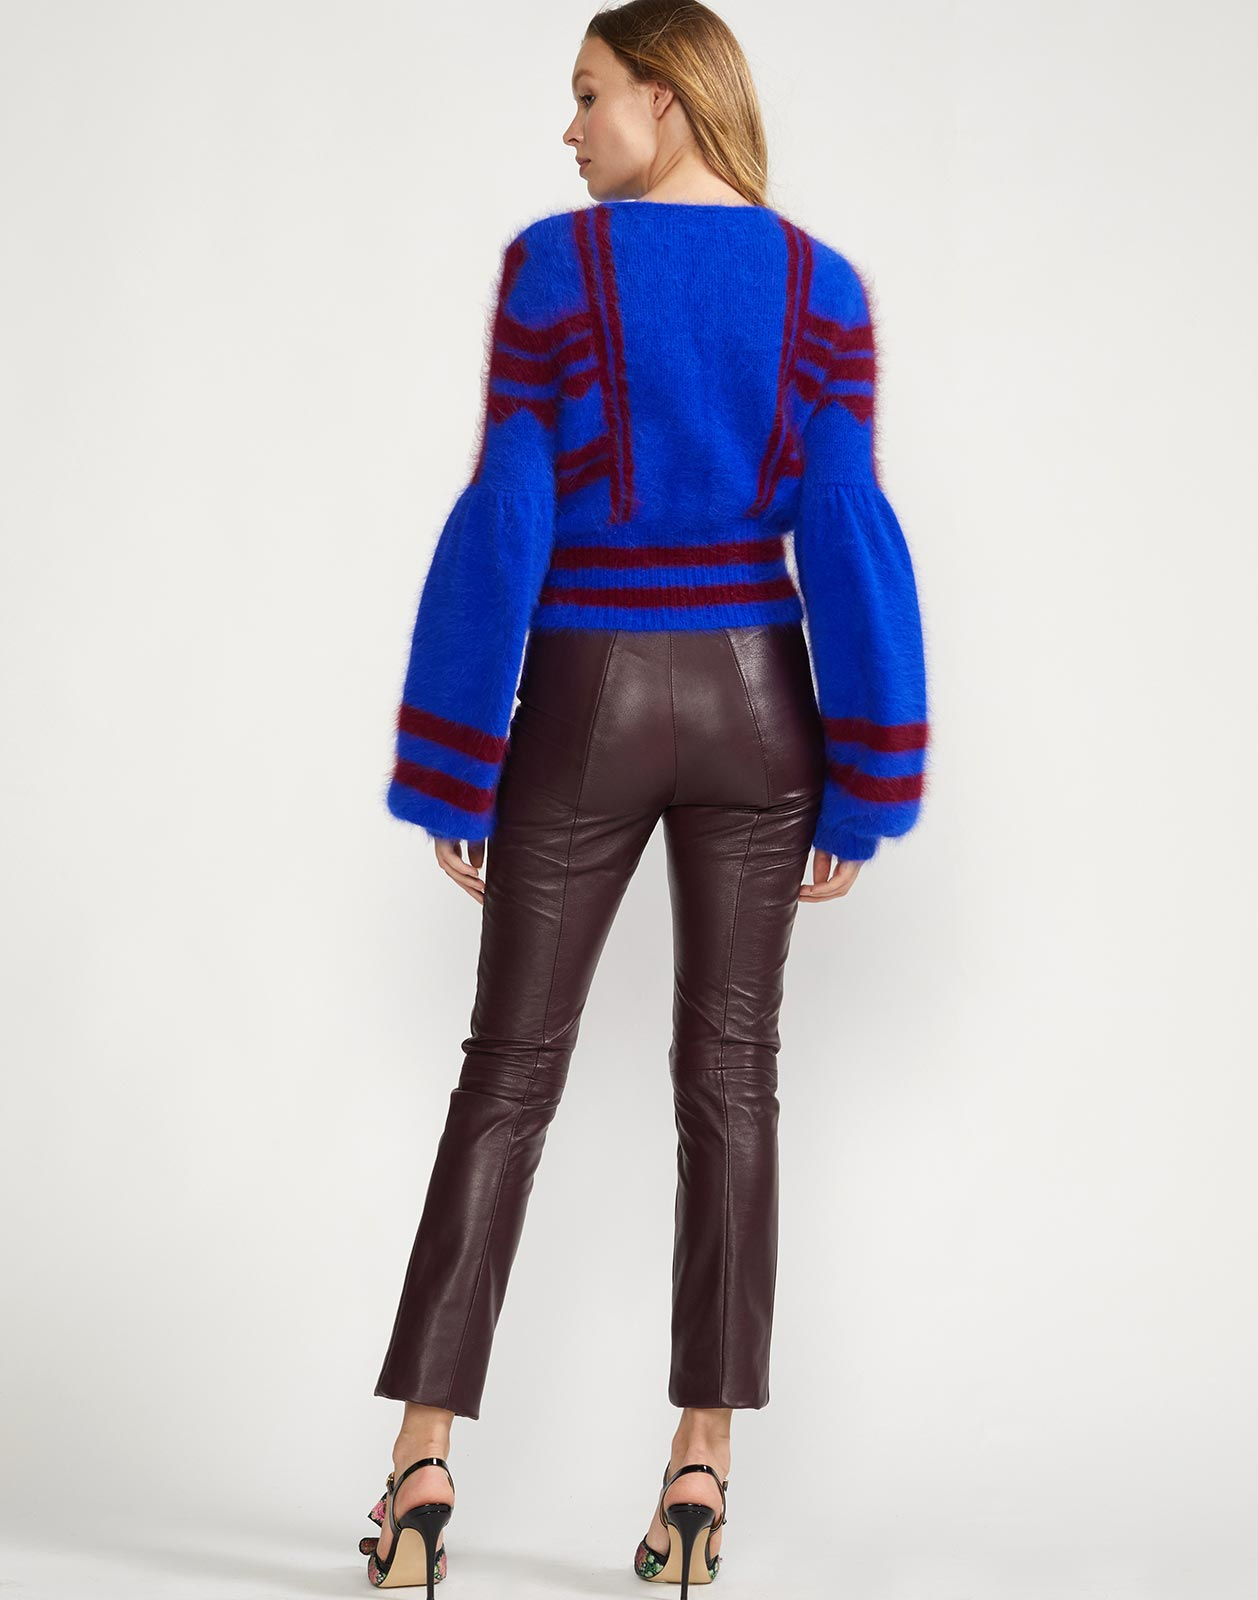 Back view of blue burgundy cropped sweater